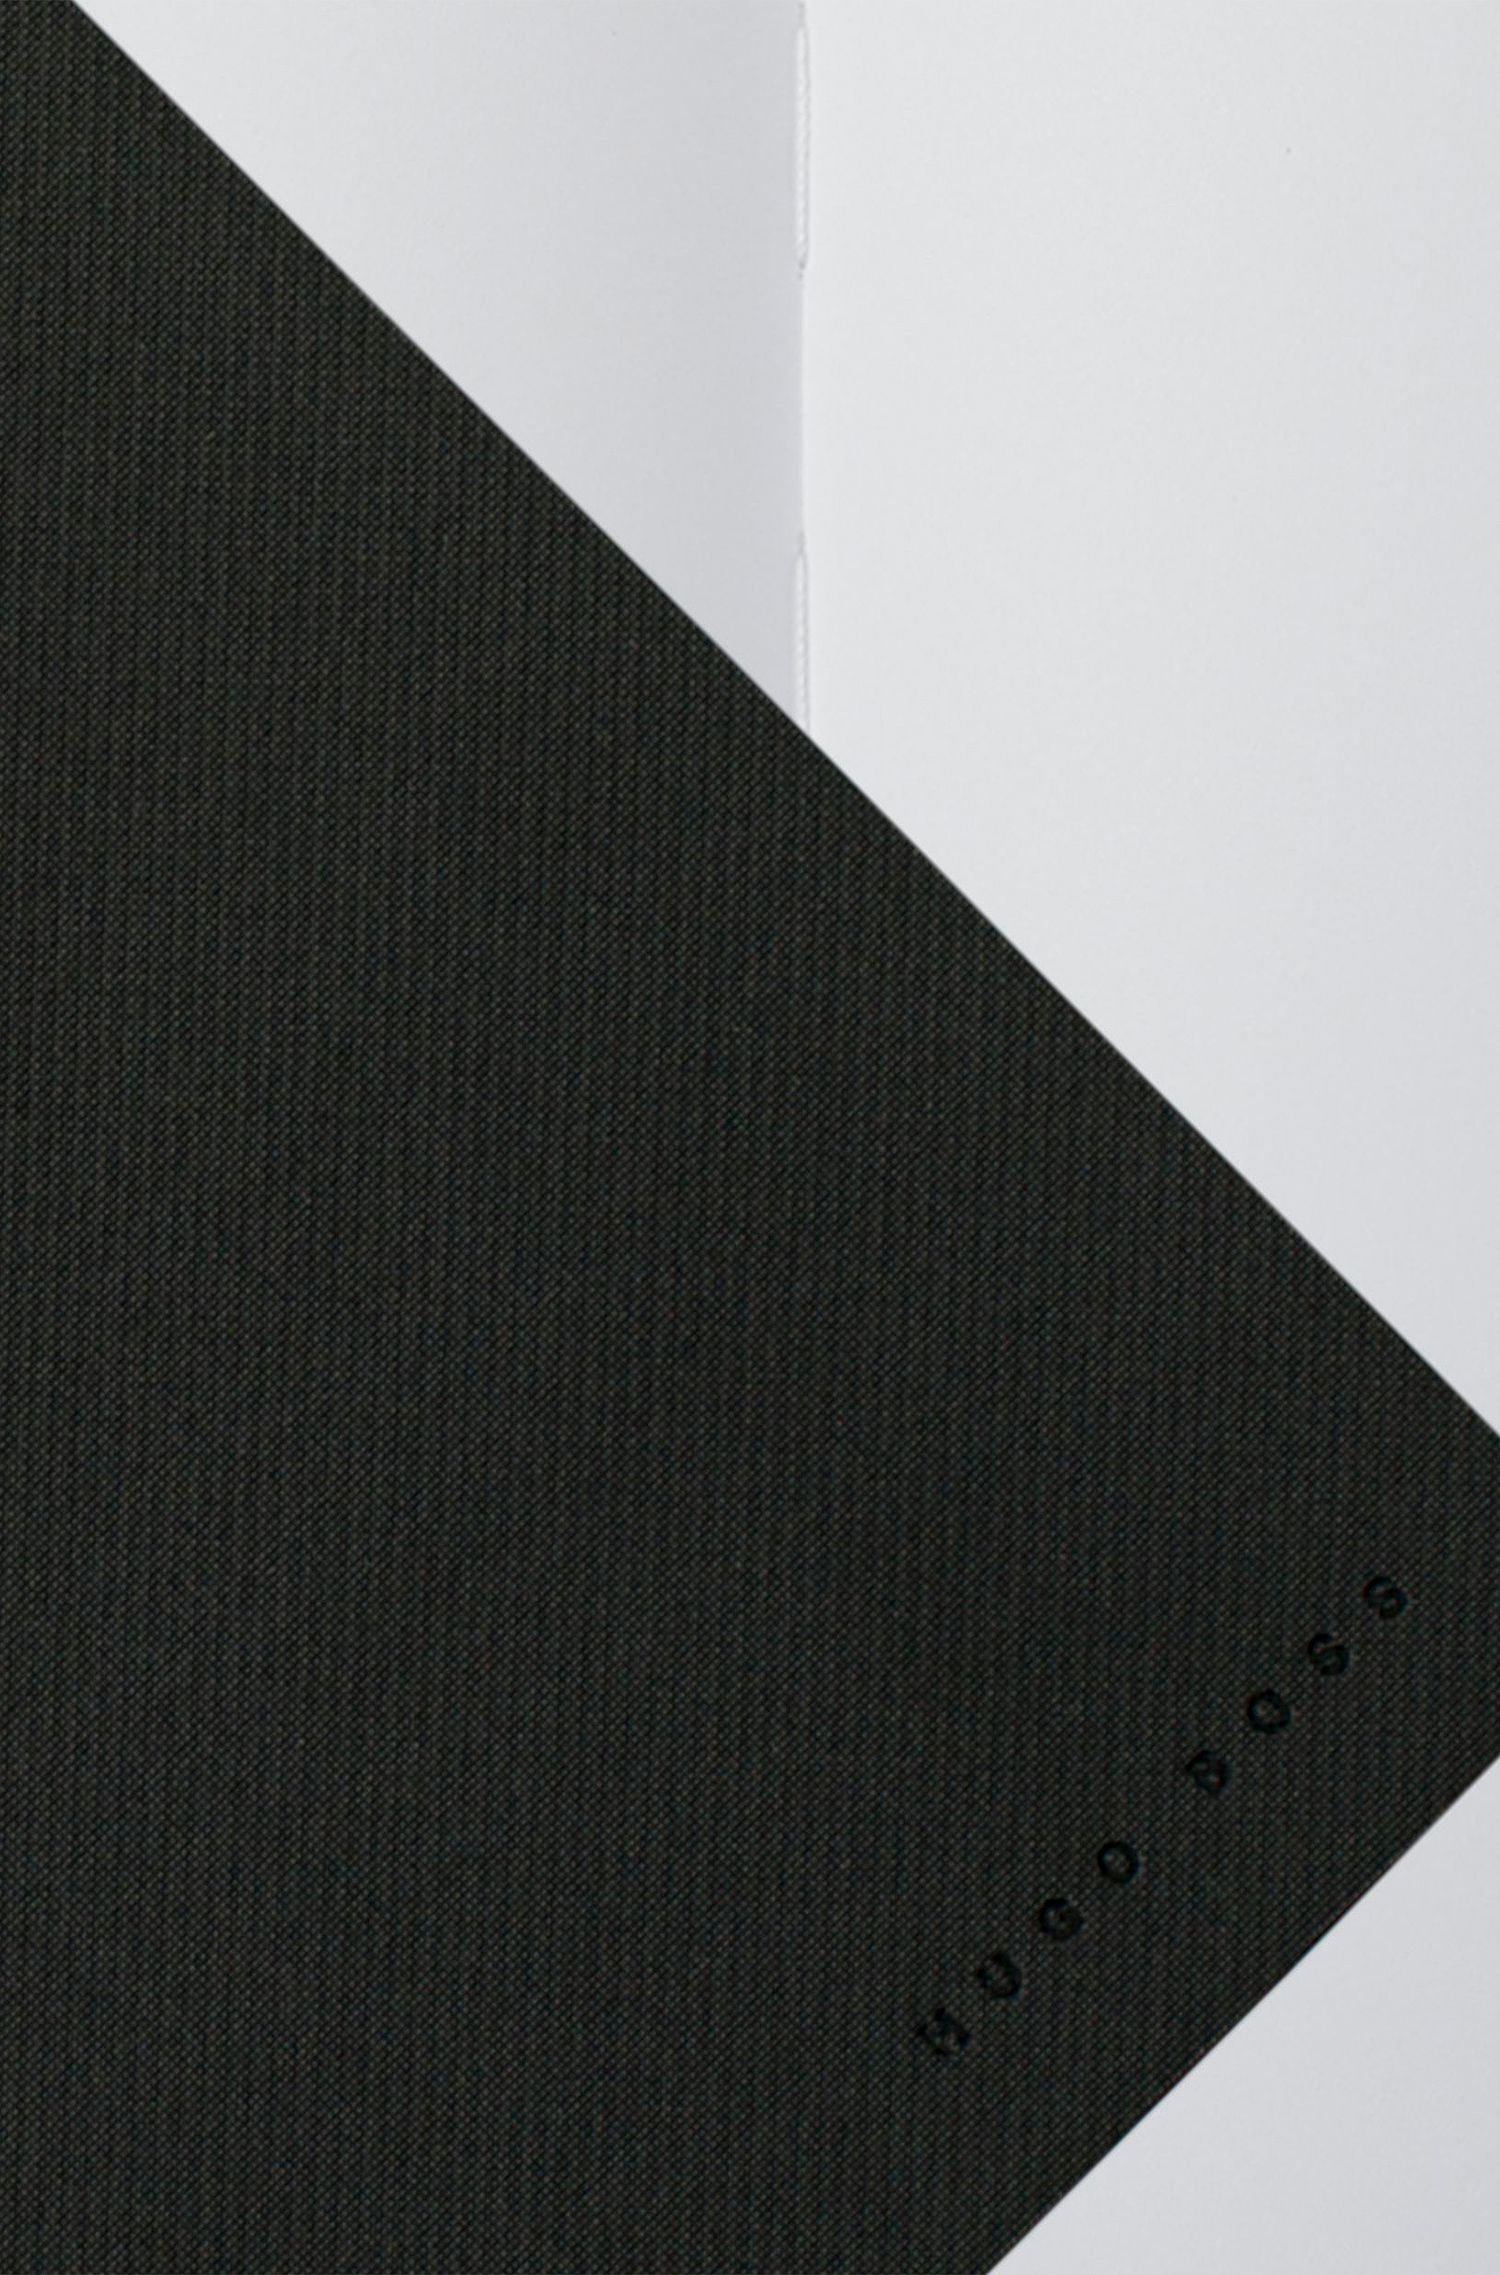 A5 notebook with dark-grey fabric cover